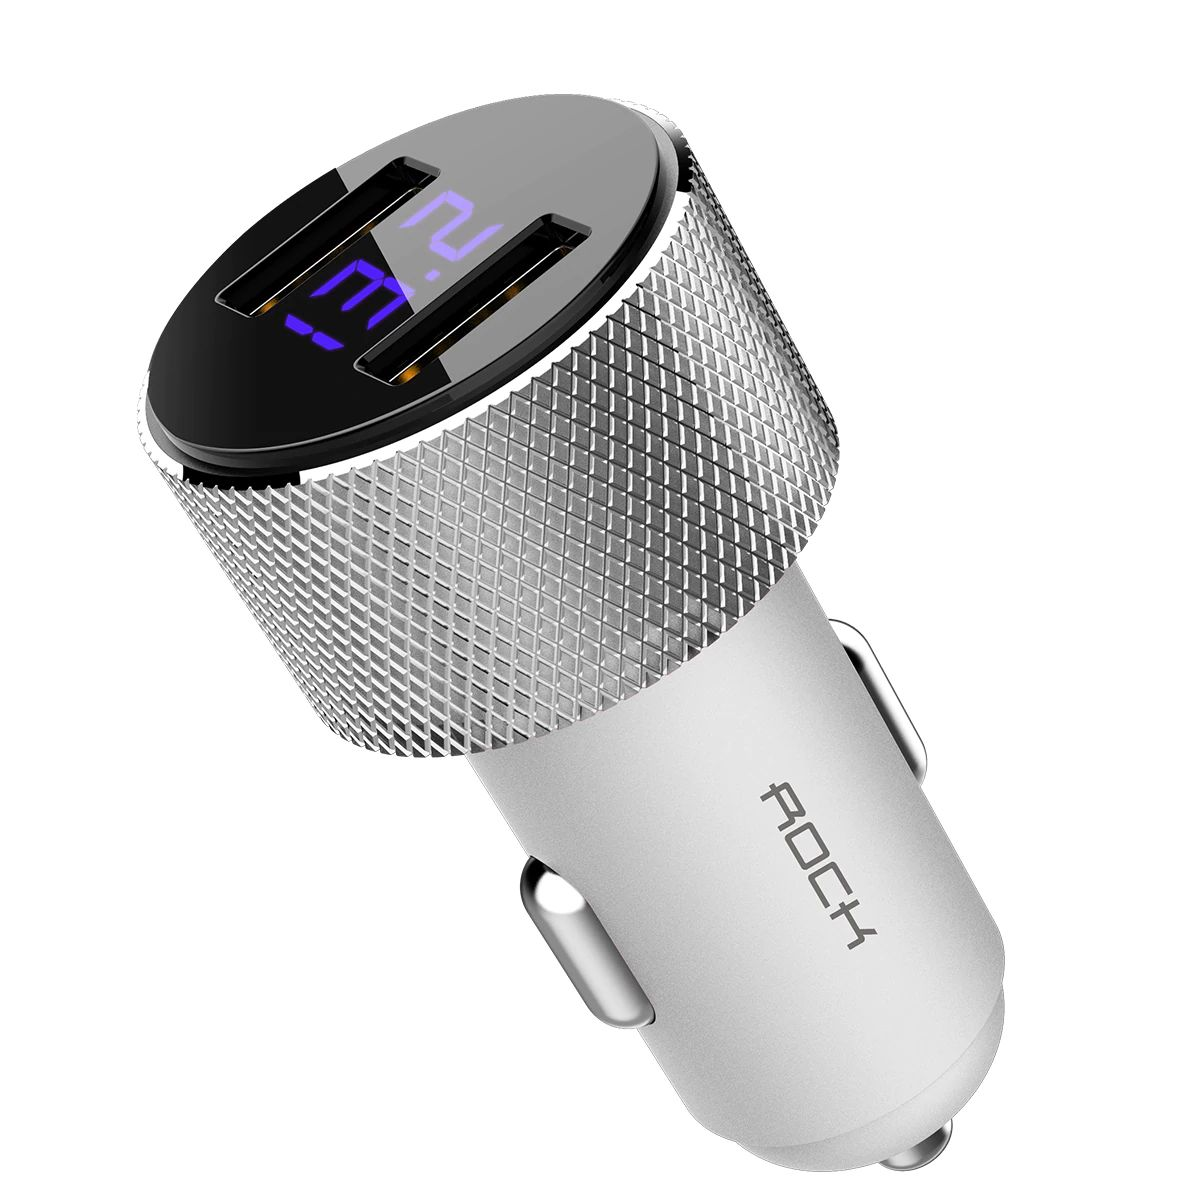 Rock Sitor Car Charger With Digital Display (7)